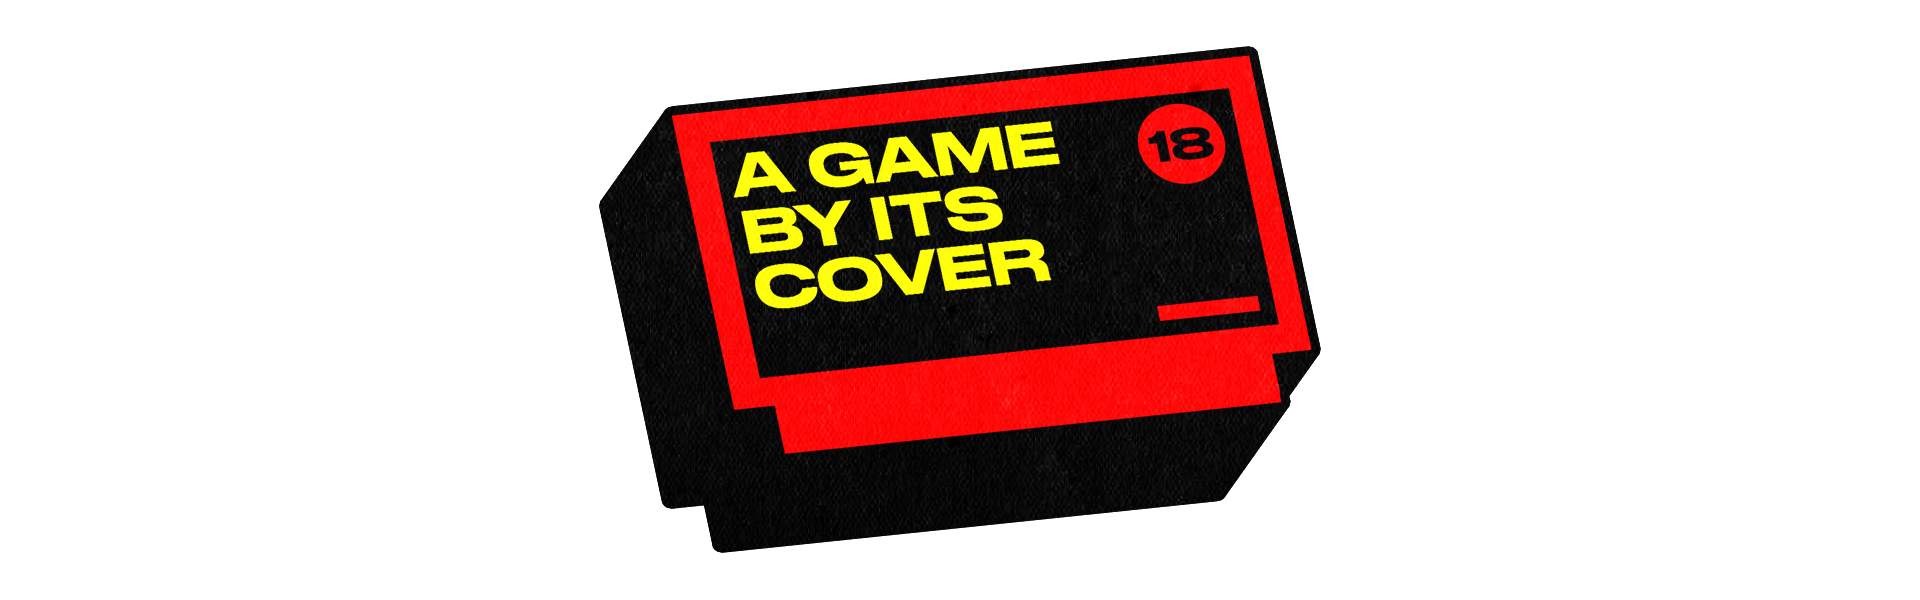 A Game By Its Cover 2018